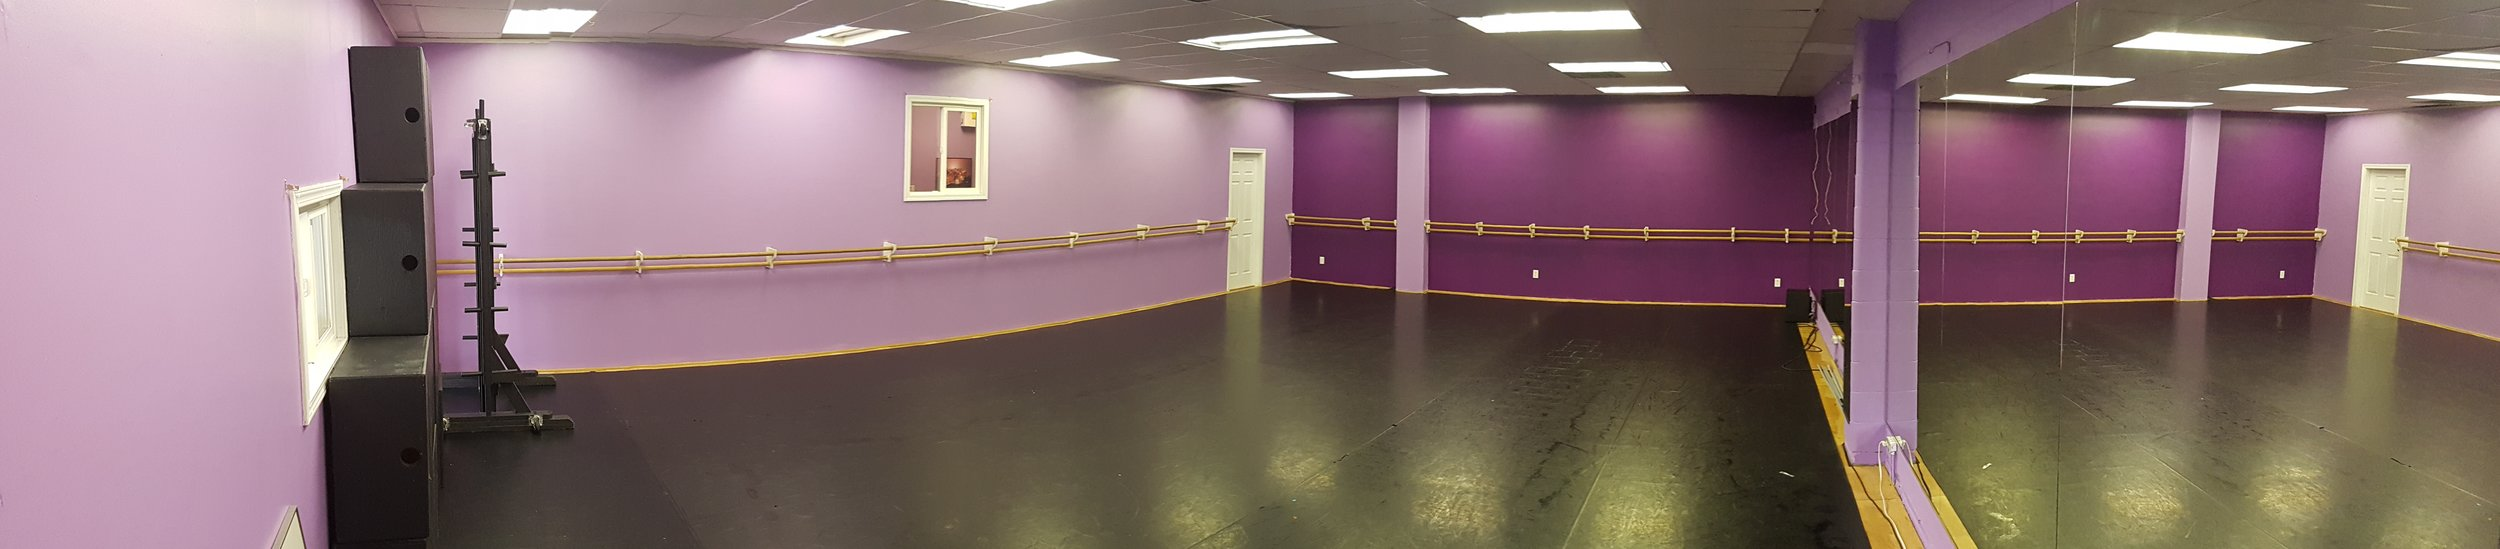 Studio 1 - Currently our largest studio space (prior to the upcoming expansion). Sprung Marley floors.